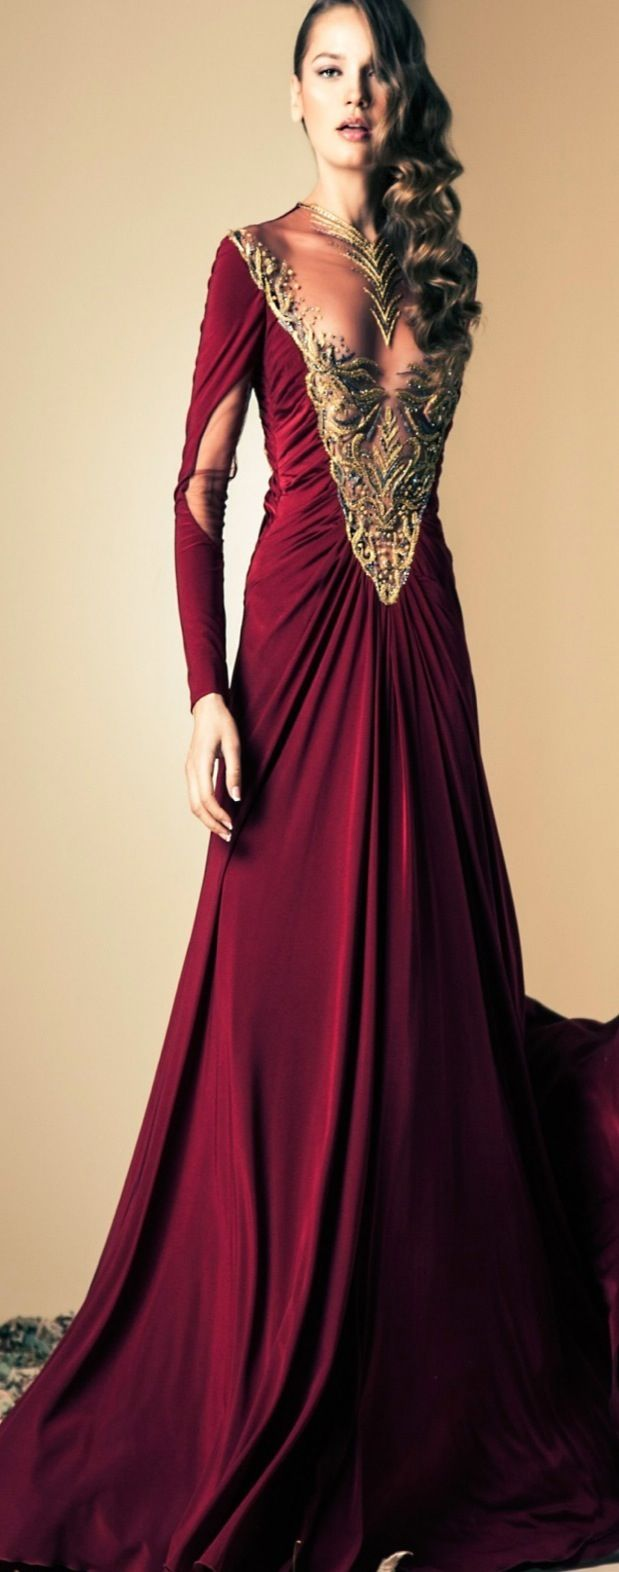 Ziad nakad fall couture collection wow this dress reminds